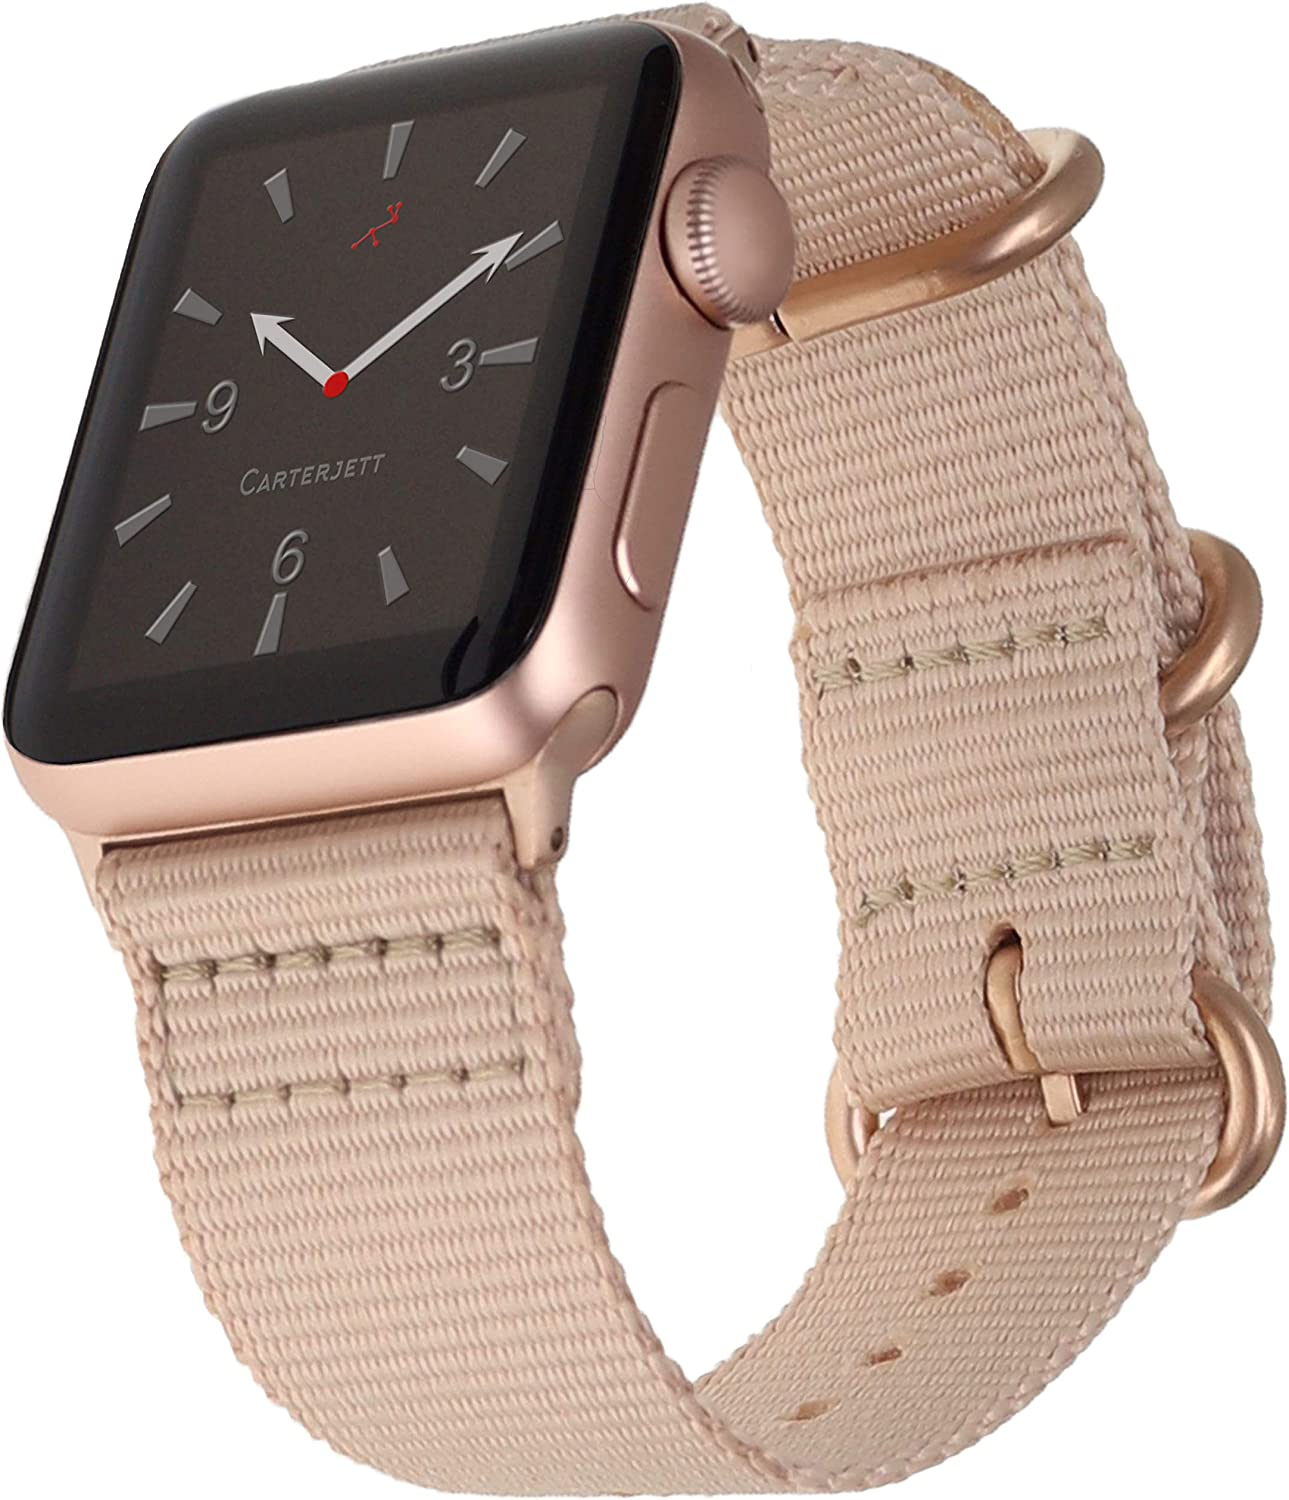 Carterjett Compatible with Apple Watch Band 38mm 40mm Blushed Cream Nylon Replacement Strap Breathable Woven Rose Gold Adapters NATO Buckle iWatch Series 4 3 2 1 (38 40 S/M/L Blushed Cream)